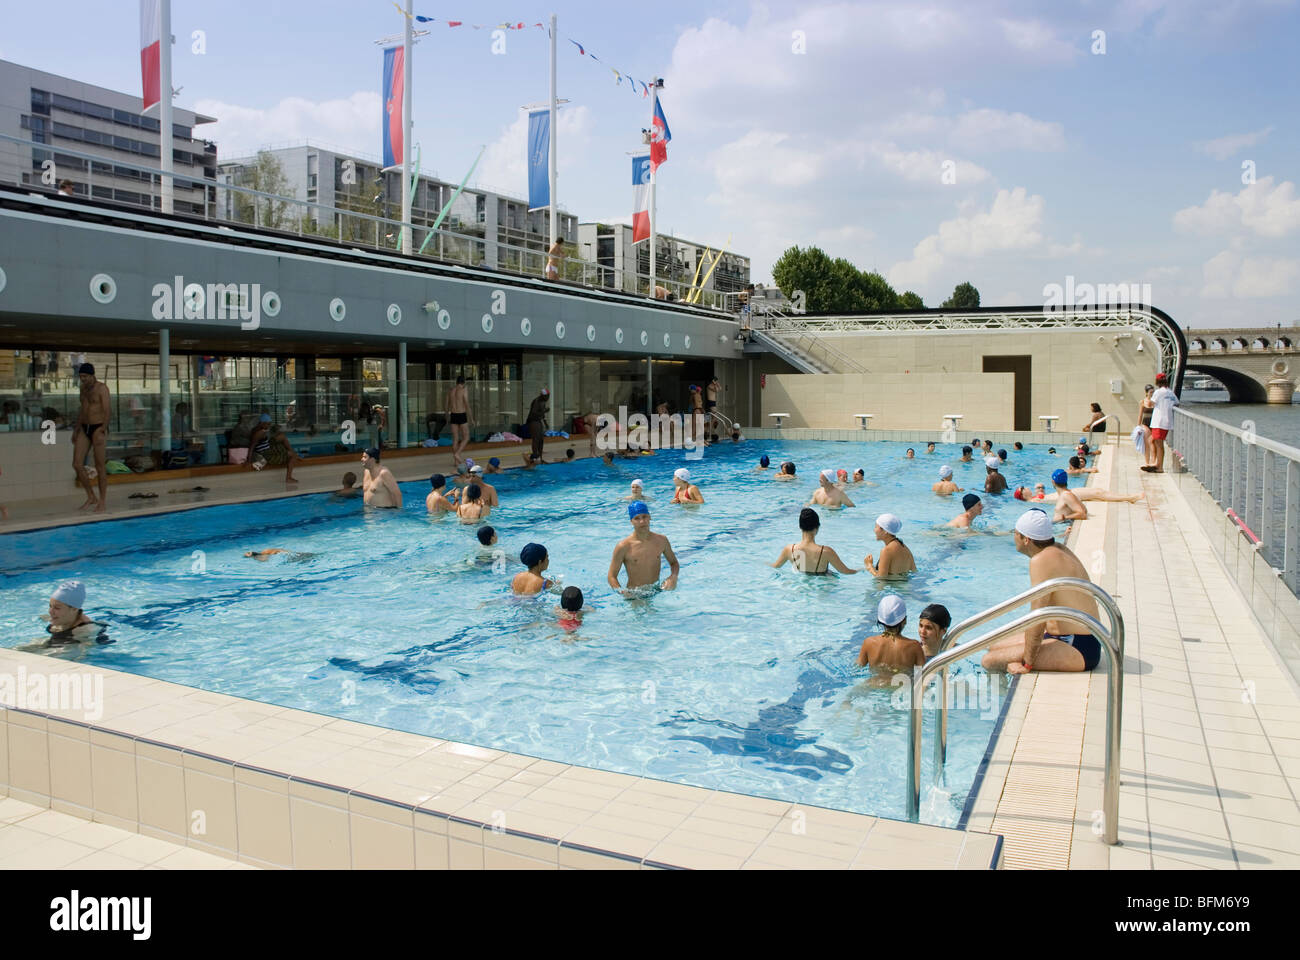 Piscine josephine baker floating swimming pool in the for Floating swimming pool paris